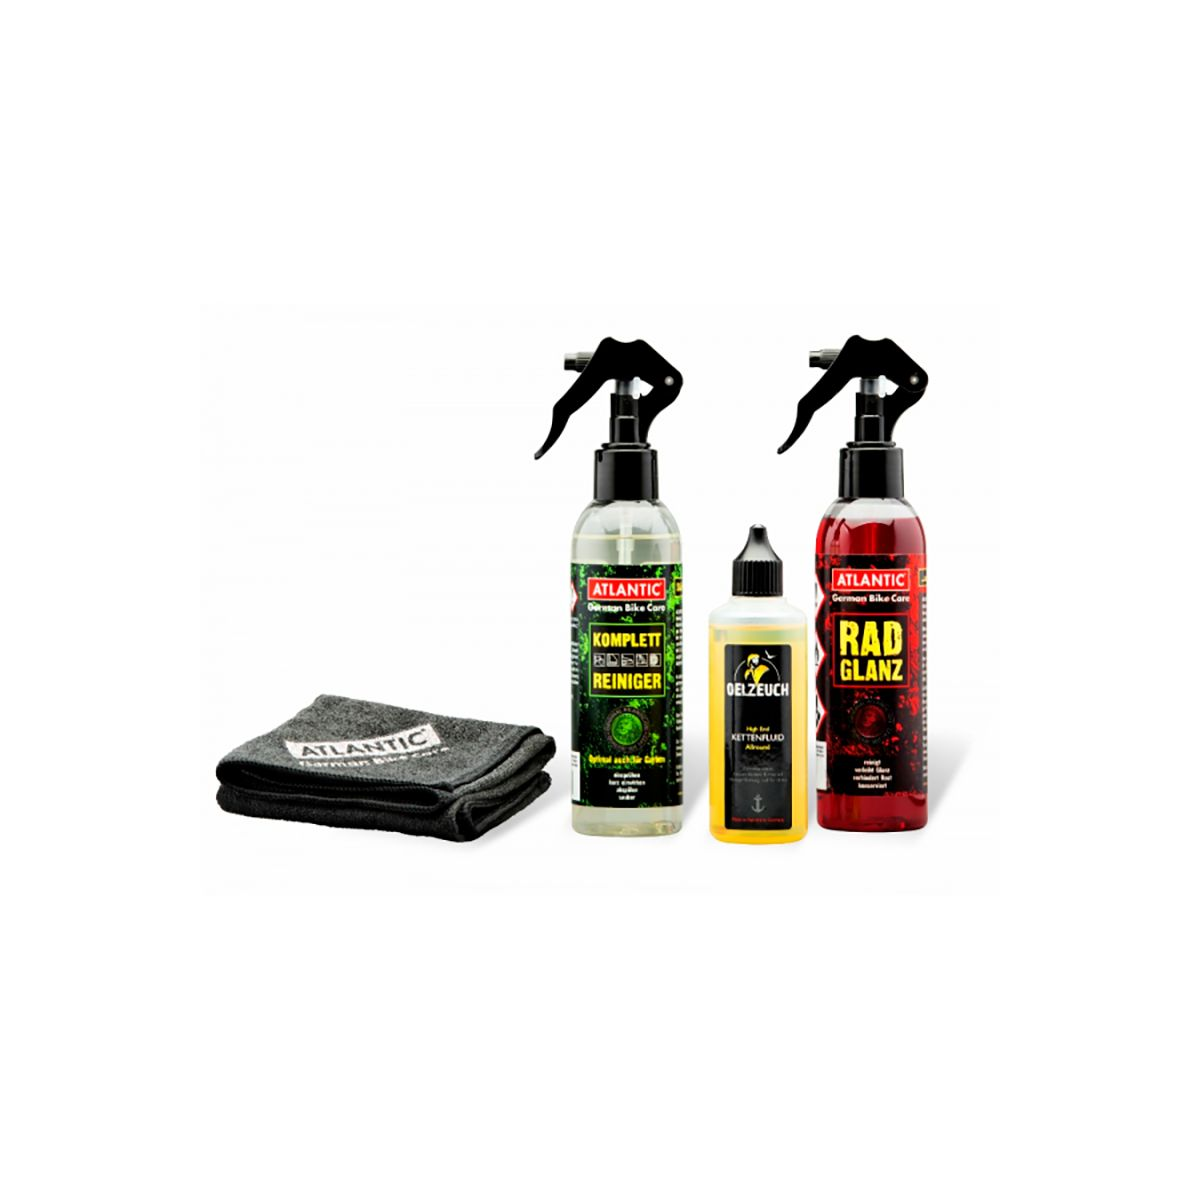 Atlantic Bike Box Bicycle Care Kit | Bike bags